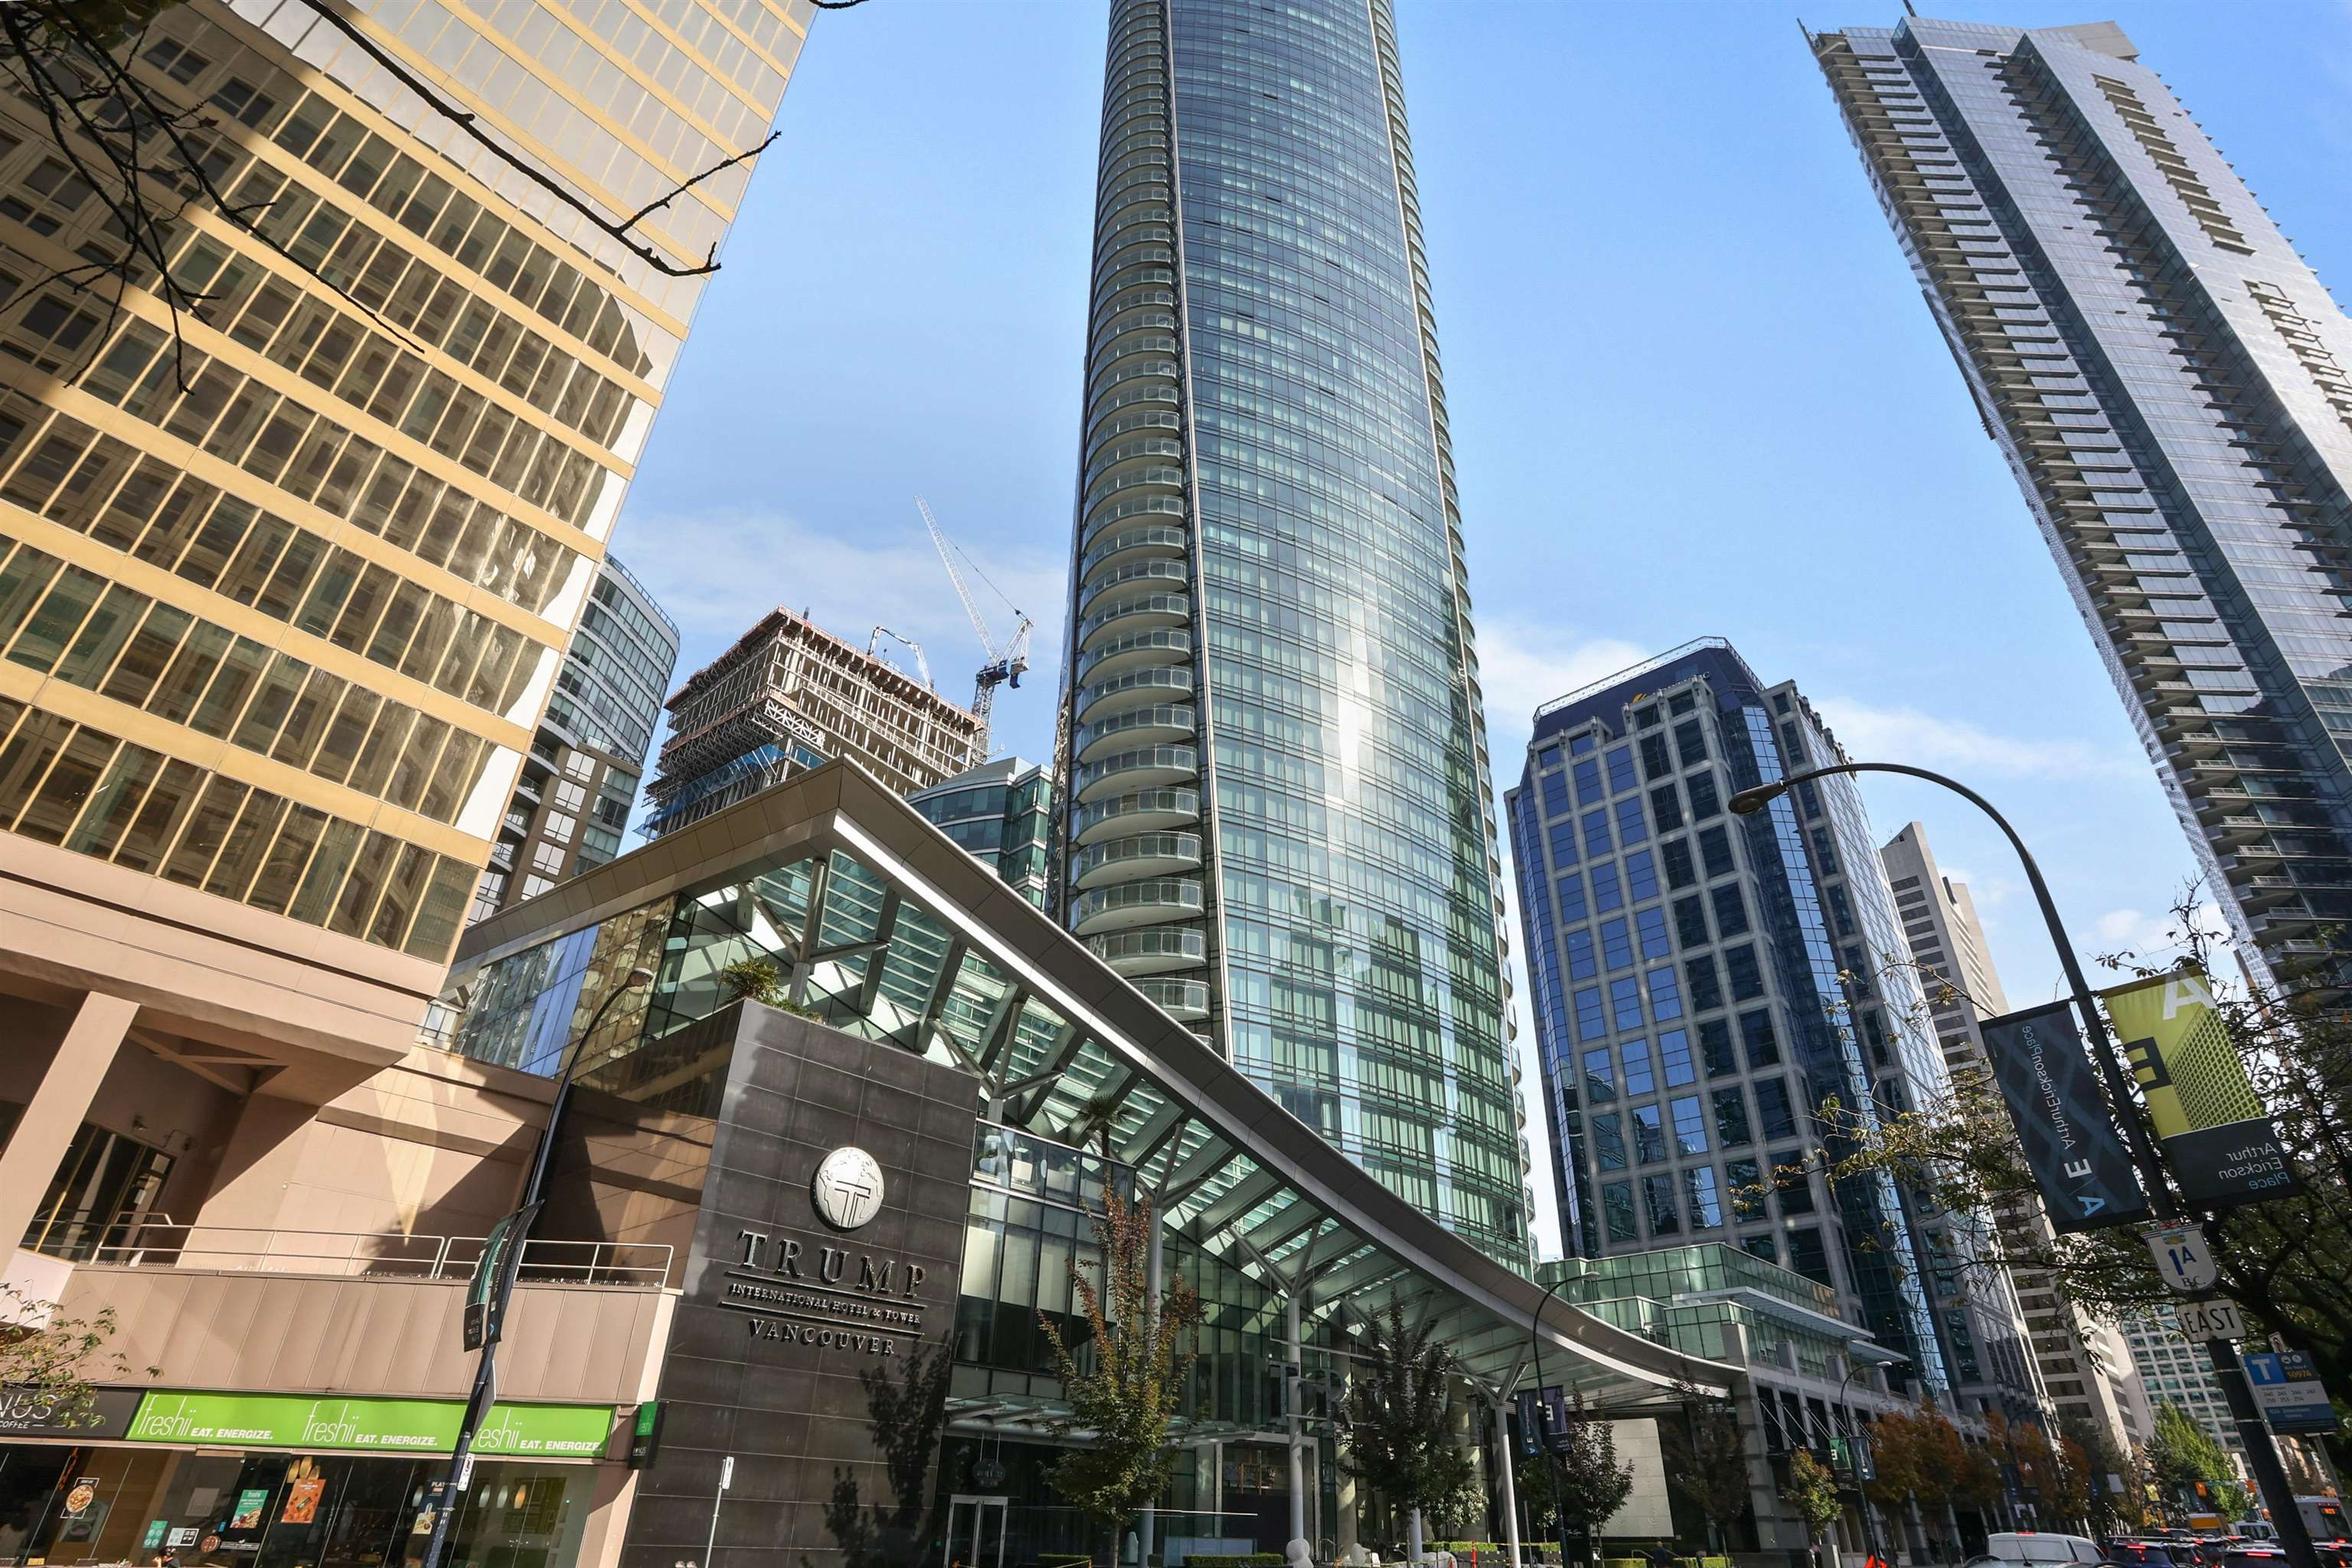 Main Photo: 3005 1151 W GEORGIA Street in Vancouver: Coal Harbour Condo for sale (Vancouver West)  : MLS®# R2624126